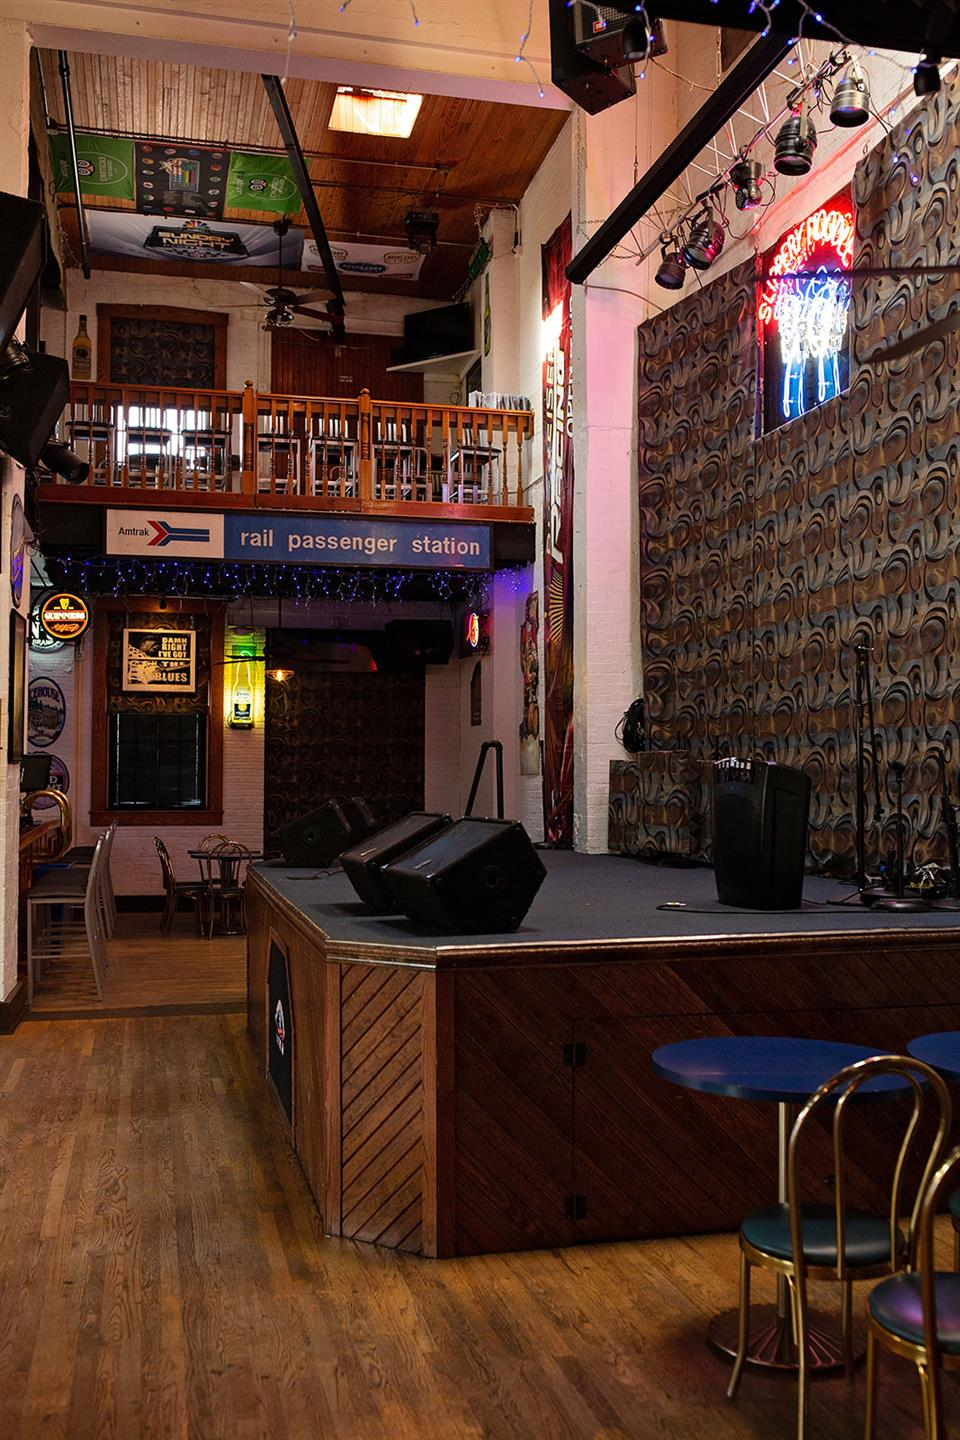 backroom talls hot, showing upstairs and stage